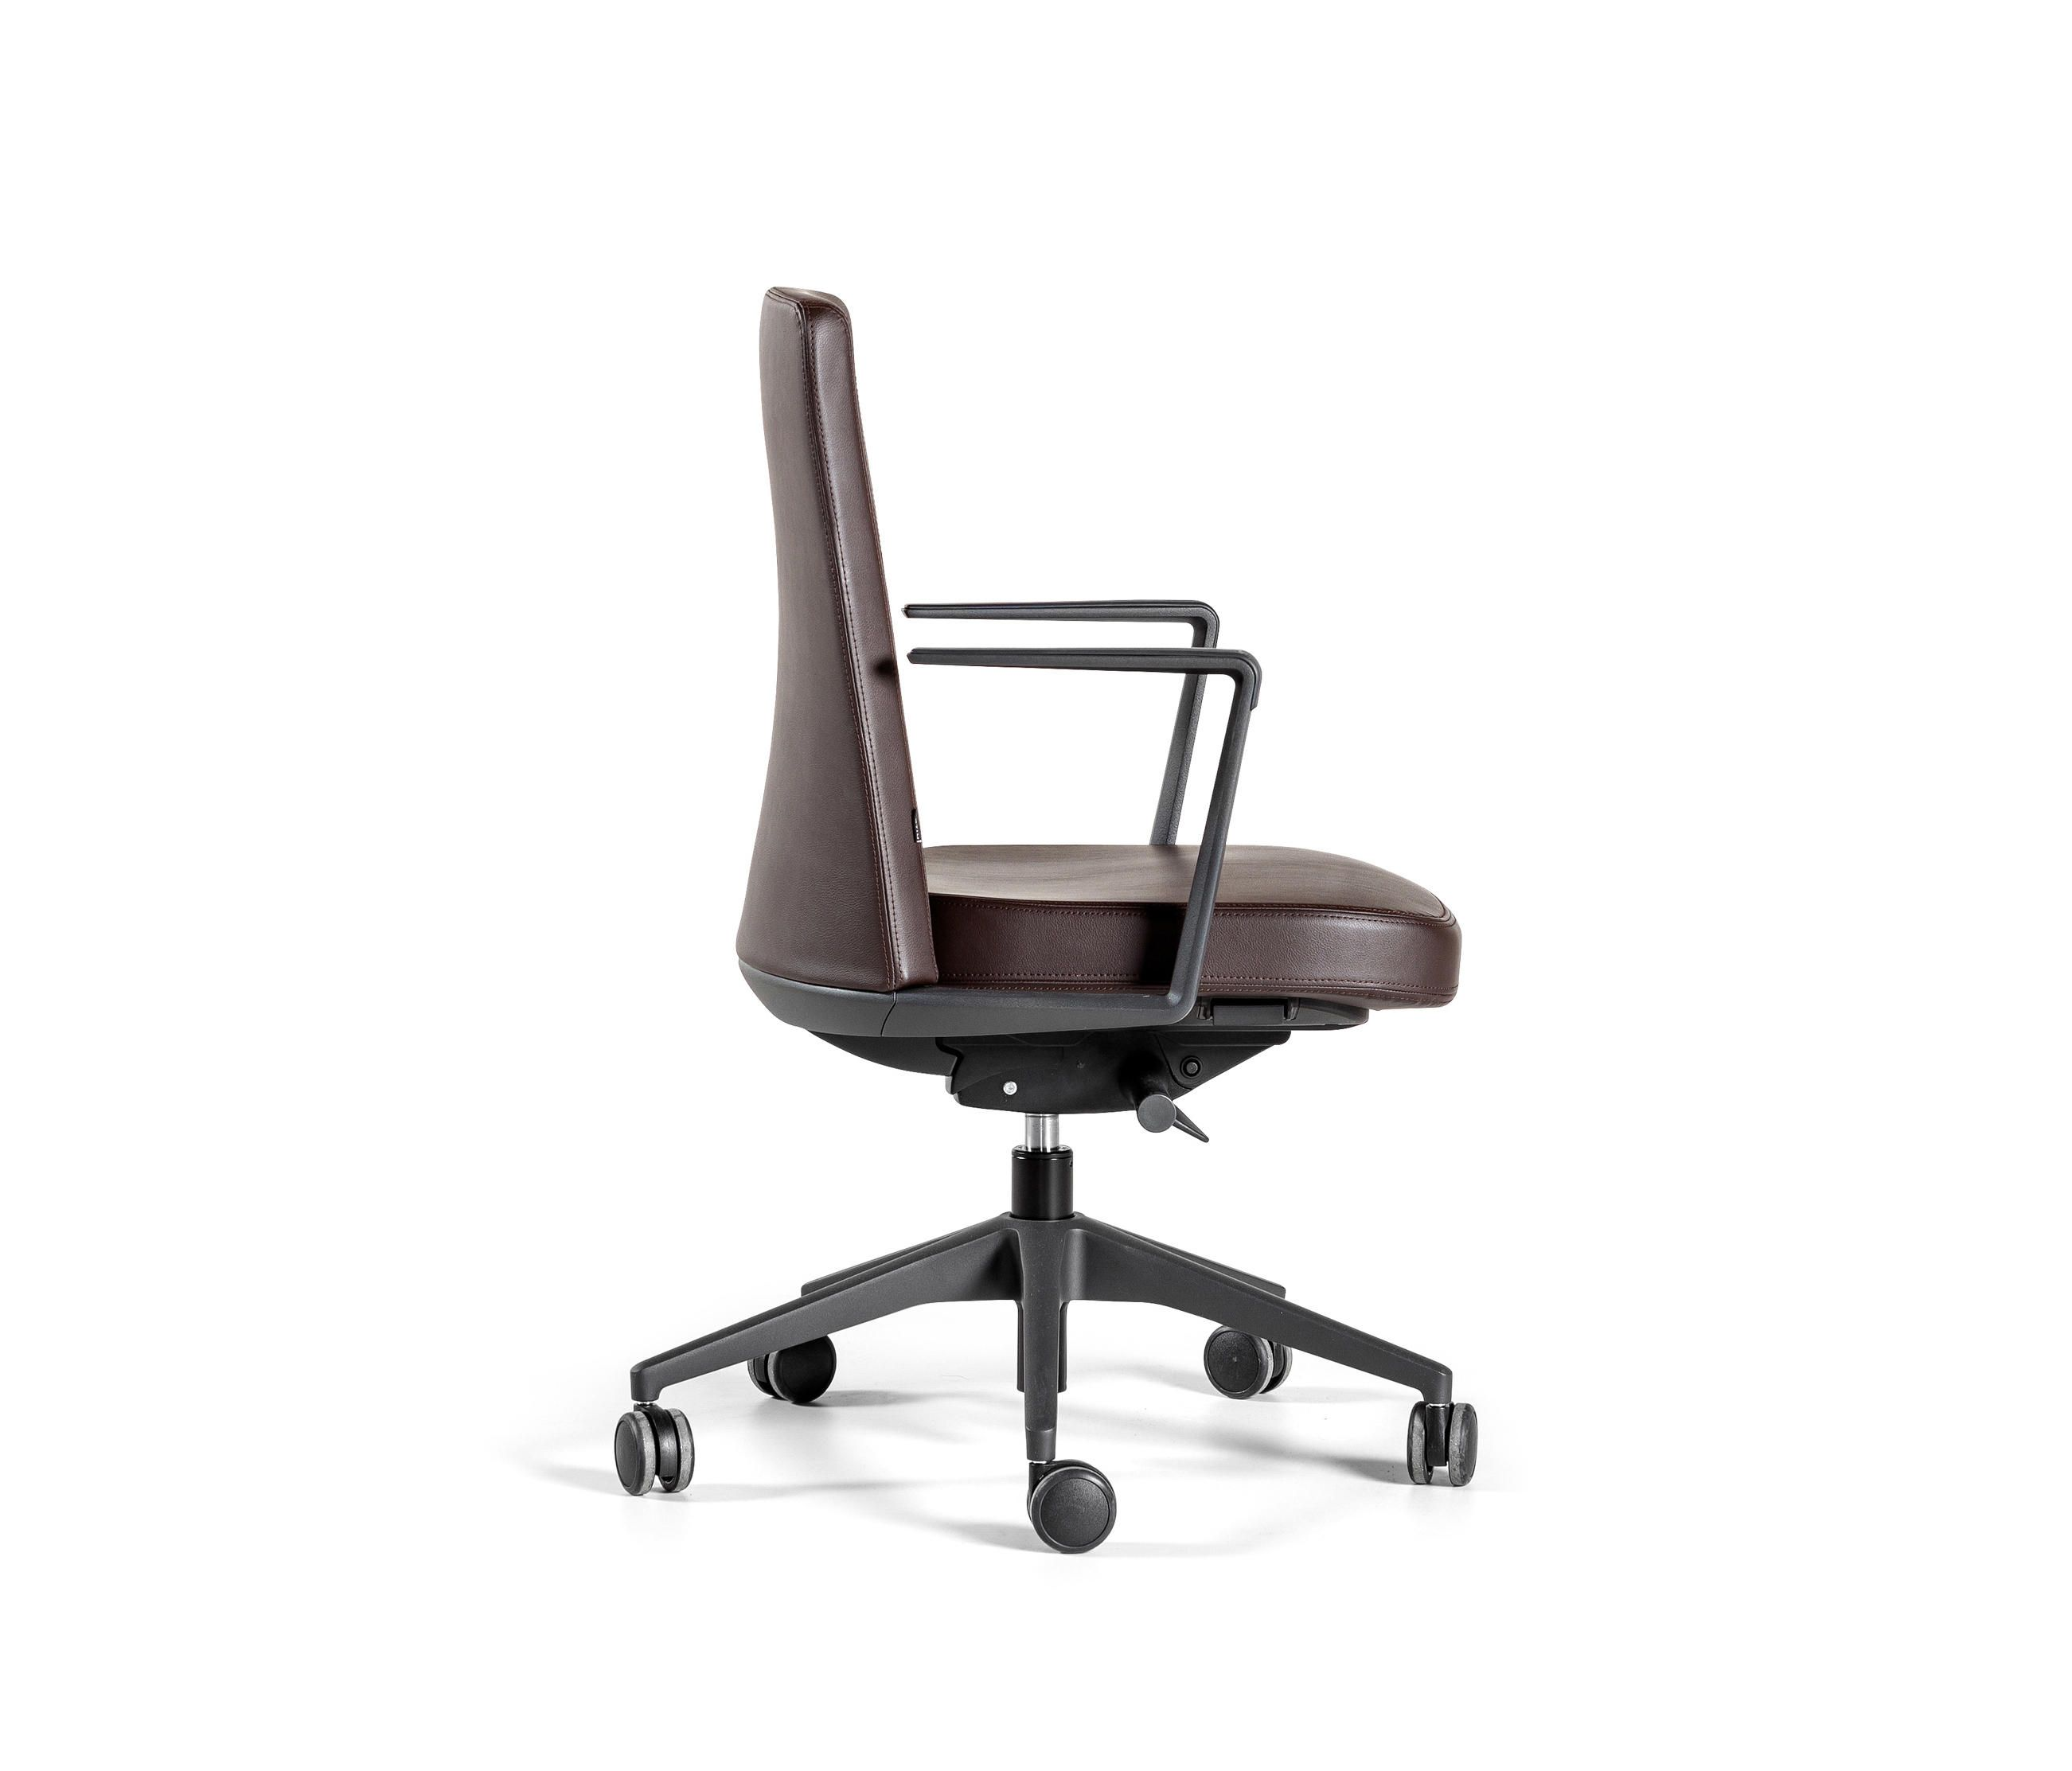 Cron Designer Office Chairs From Actiu All Information